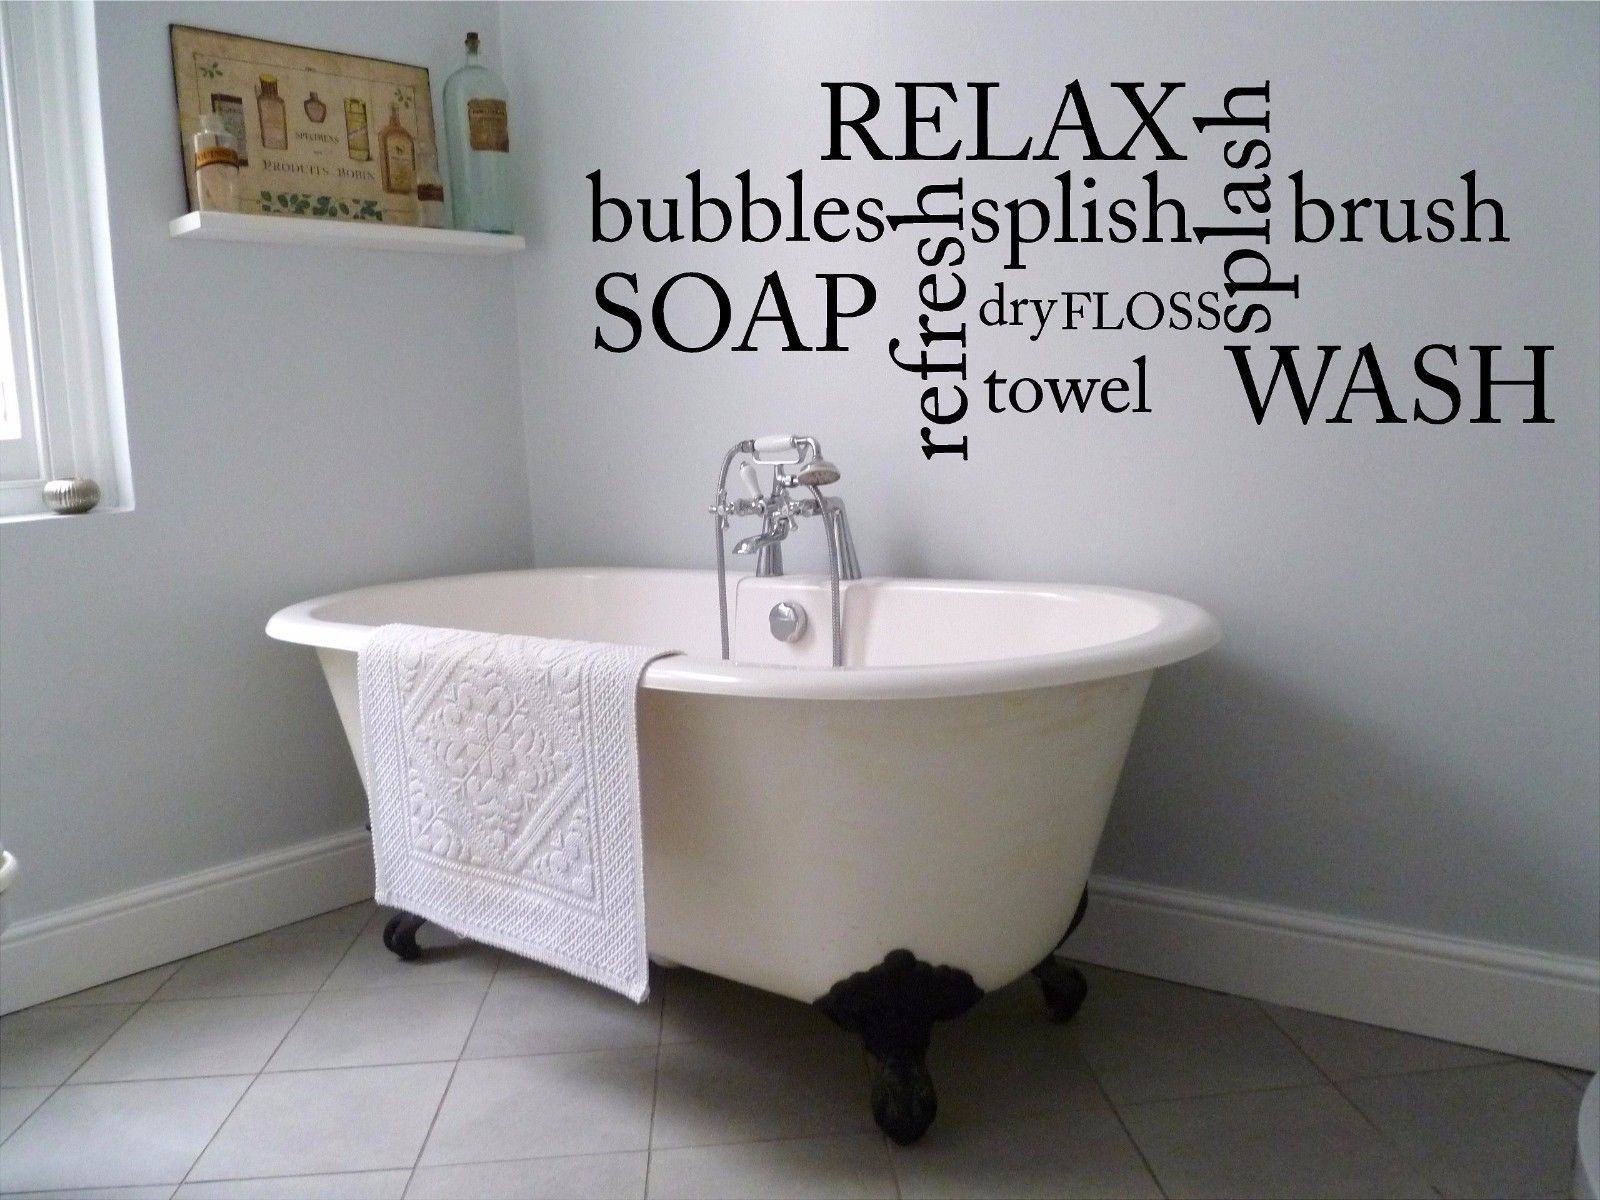 Bubbles Soap Relax Wash Bathroom Wall Decal Cute Funny Room Bath Vinyl Sticker ...